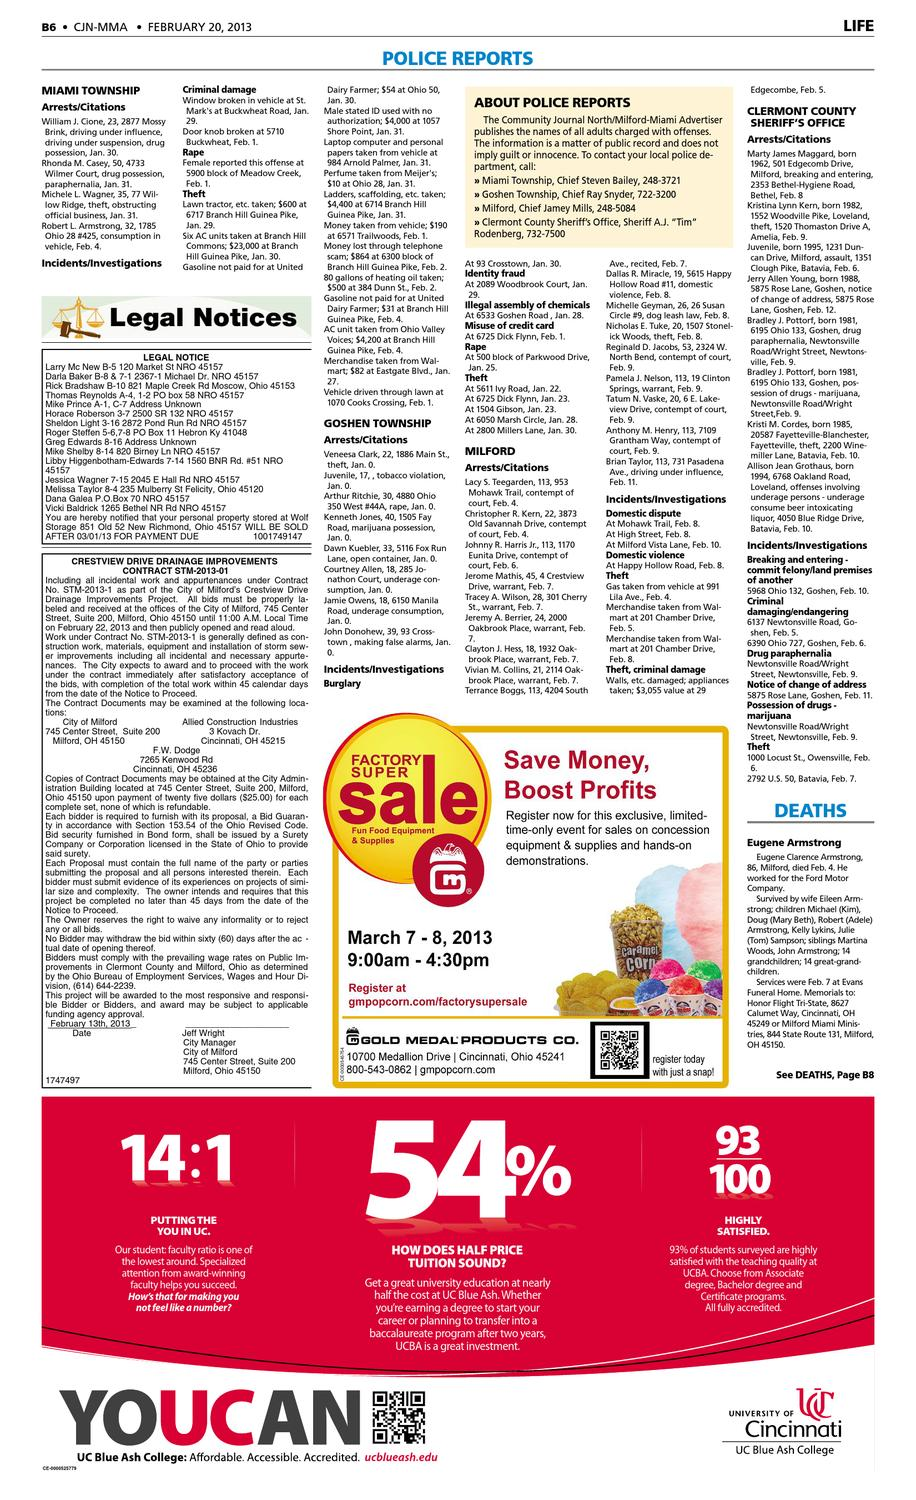 milford-miami-advertiser-022013 by Enquirer Media - issuu